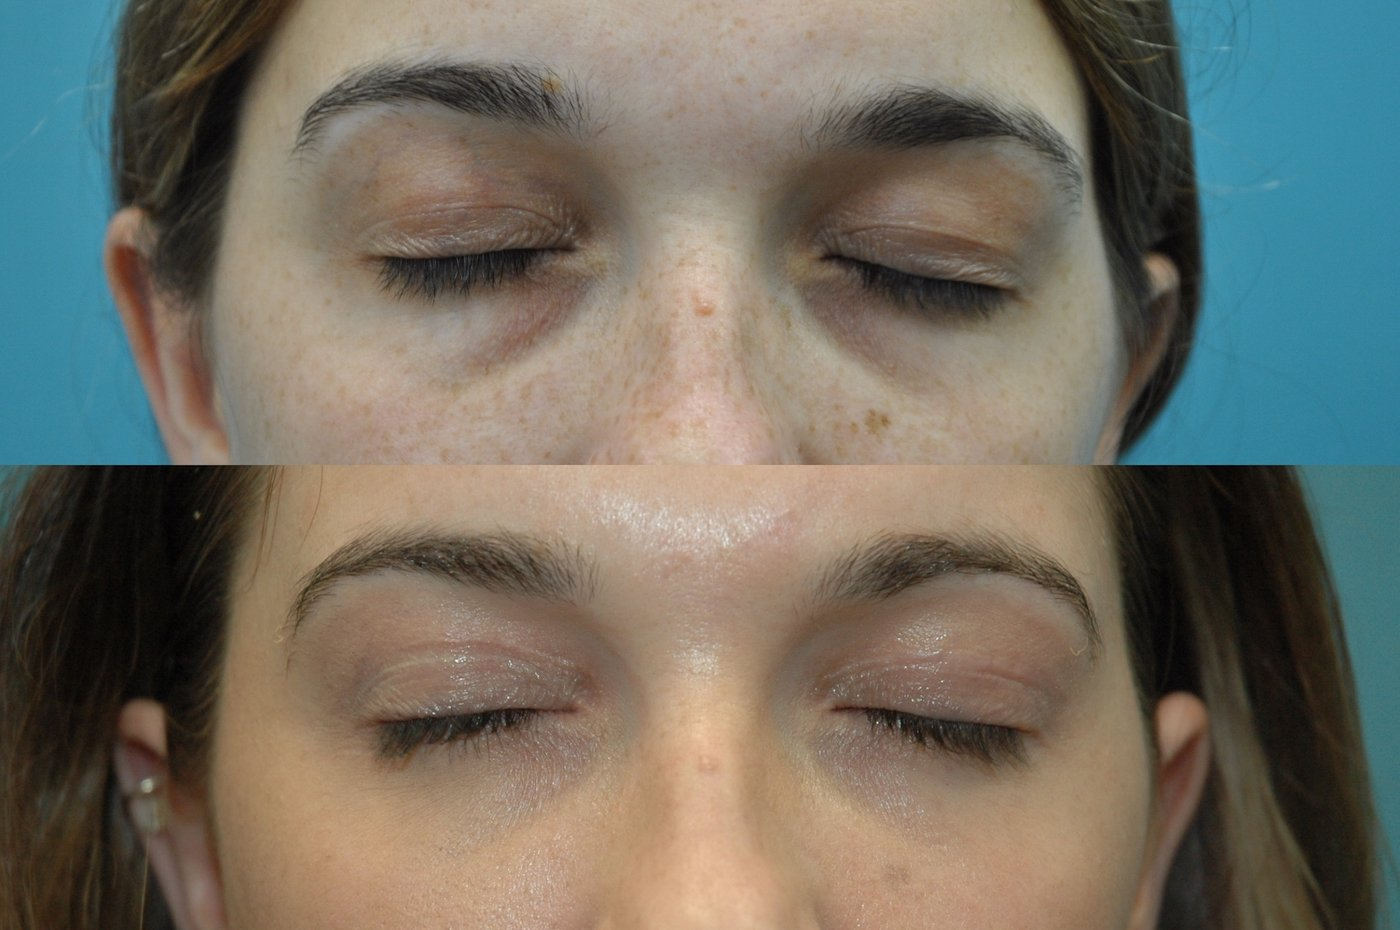 27 year old after upper and lower blepharoplasty with transposition of medial and middle fat pads. Eyes closed showing upper eyelid scar.